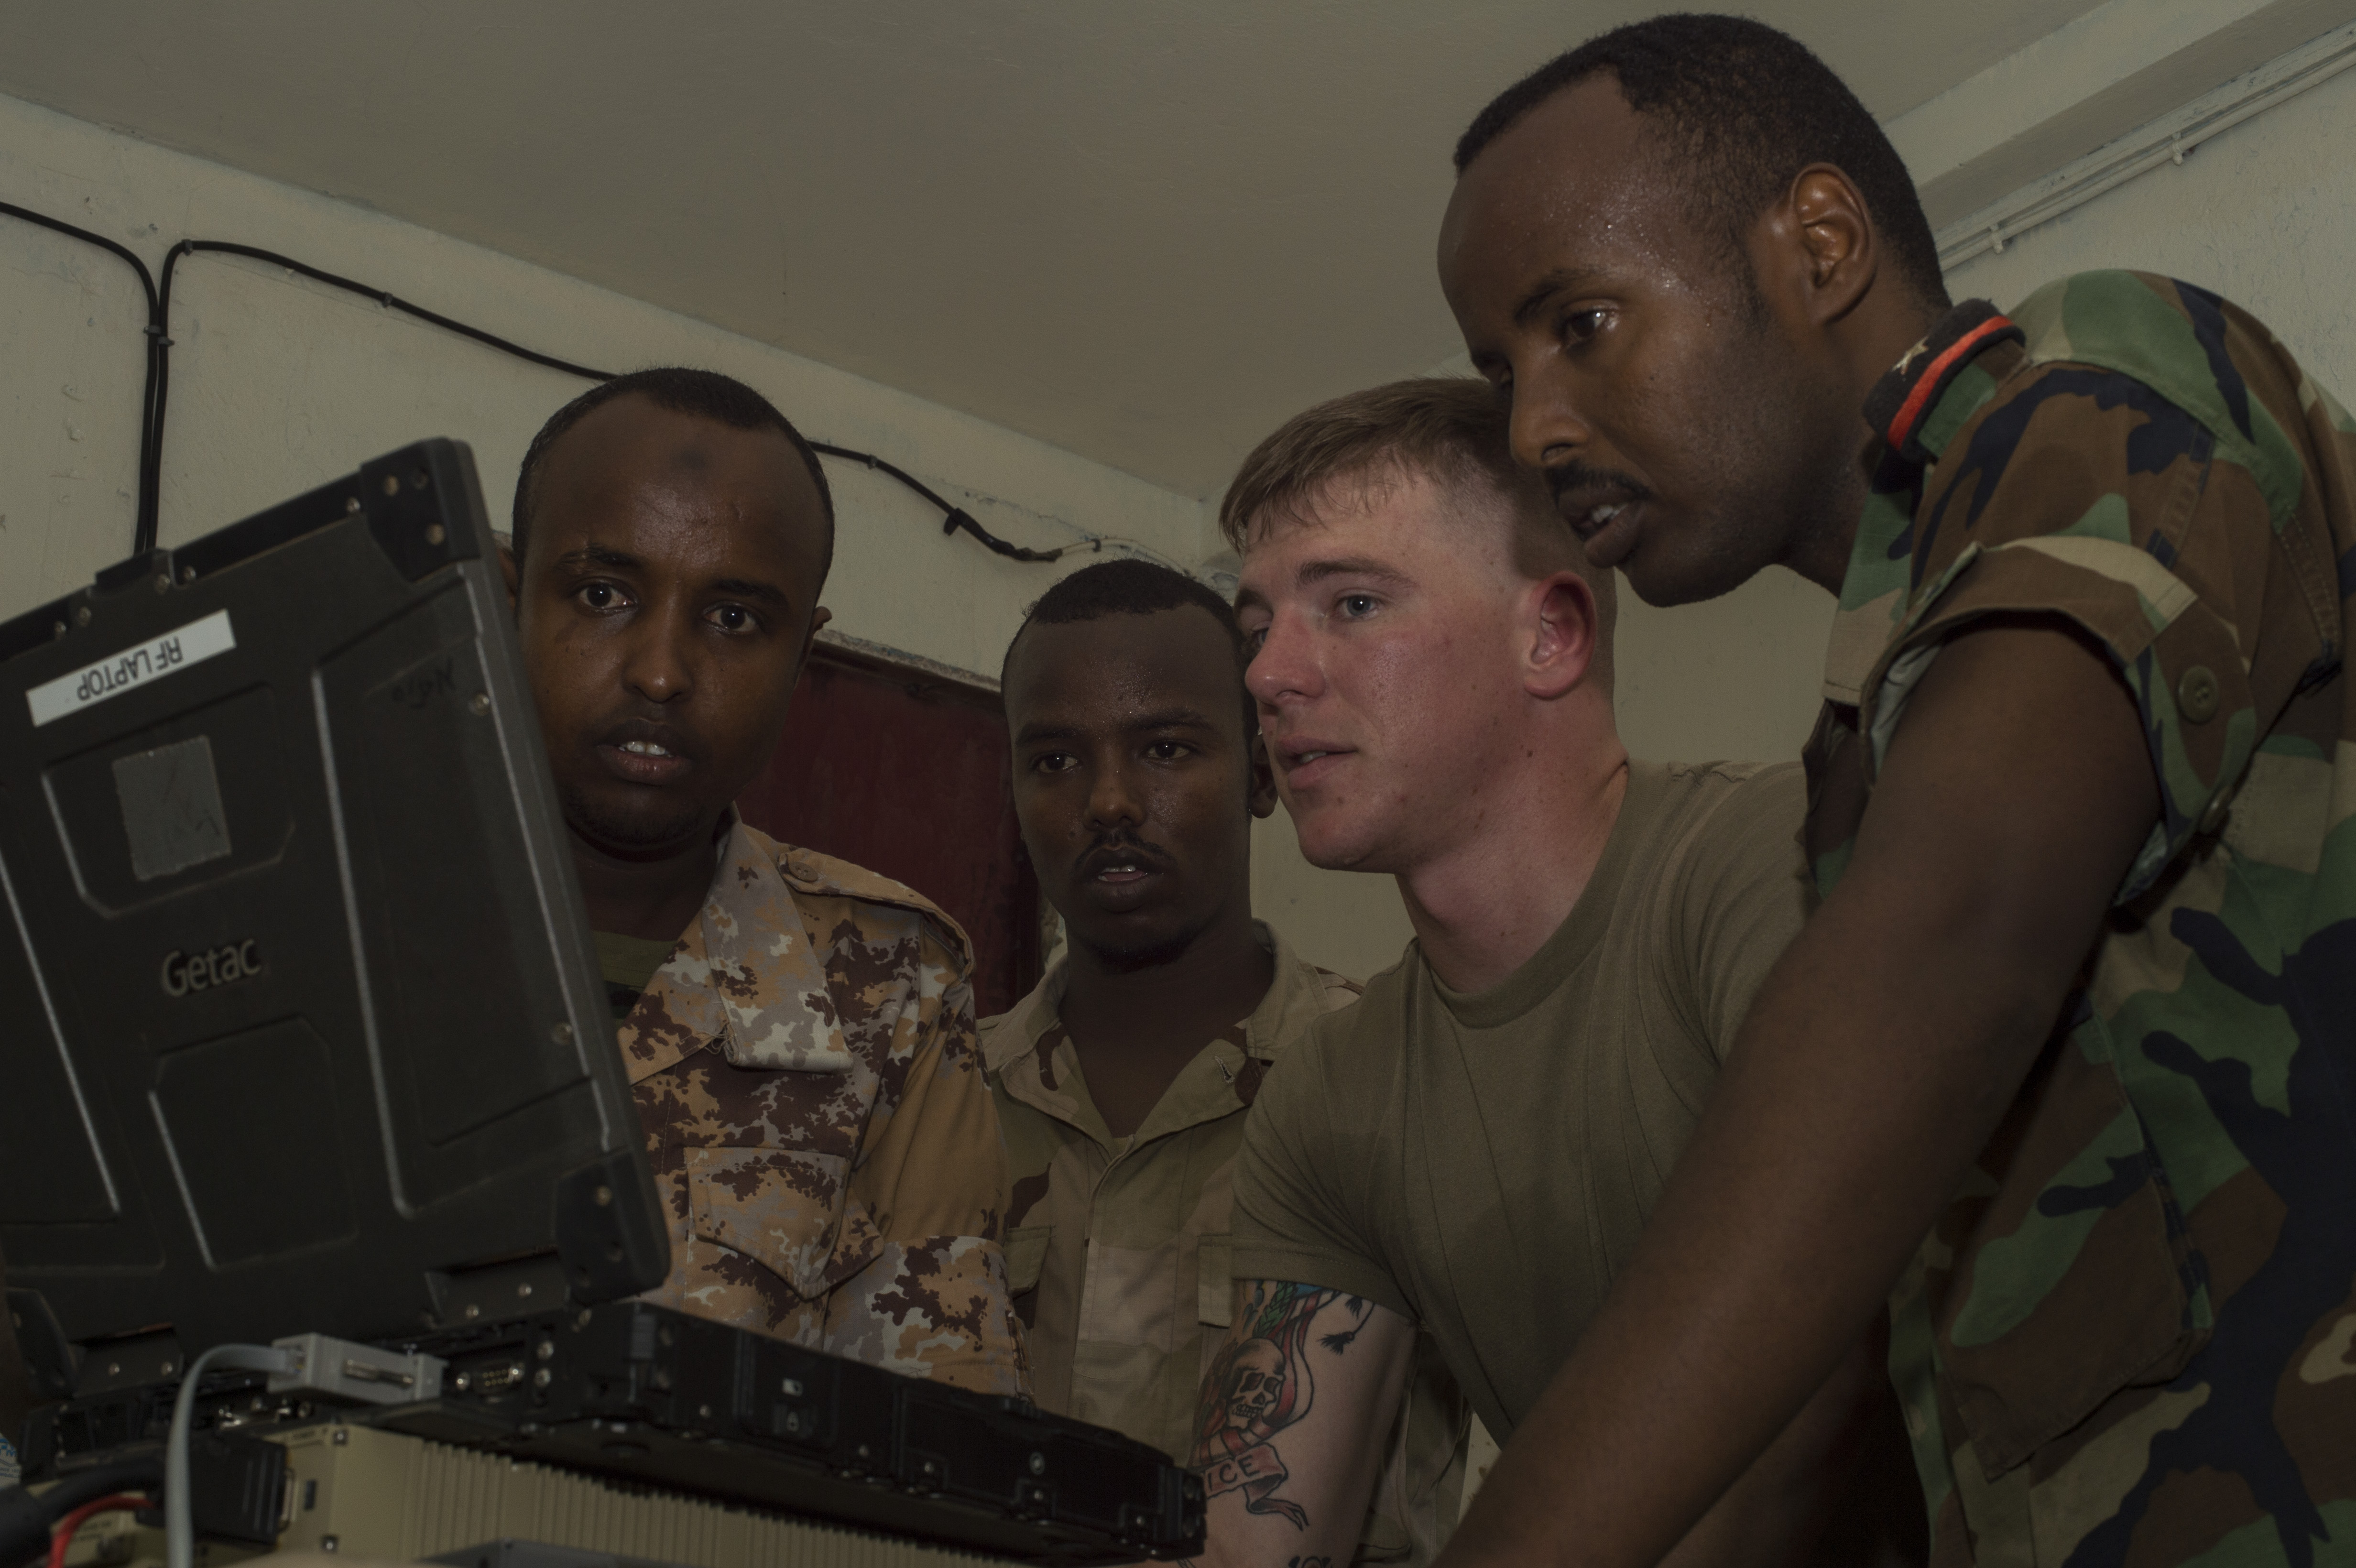 U.S. Army Spc. Dillin Hart, a Combined Joint Task Force-Horn of Africa technician on the Africa Data Sharing Network (ADSN) system, reviews network configurations with members of the Djibouti Armed Forces (FAD) during training validation Sept. 28, 2016, at FAD Headquarters in Djibouti.  While conducting the best practices training, the U.S. Army technicians assigned to Combined Joint Task-Horn of Africa, also held an ADSN validation with the FAD soldiers to prepare them to deploy to Somalia.  The ADSN provides network and Voice over Internet Protocol capabilities between the several African countries participating in the Africa Union Mission in Somalia. (U.S. Air Force photo by Staff Sgt. Eric Summers Jr.)